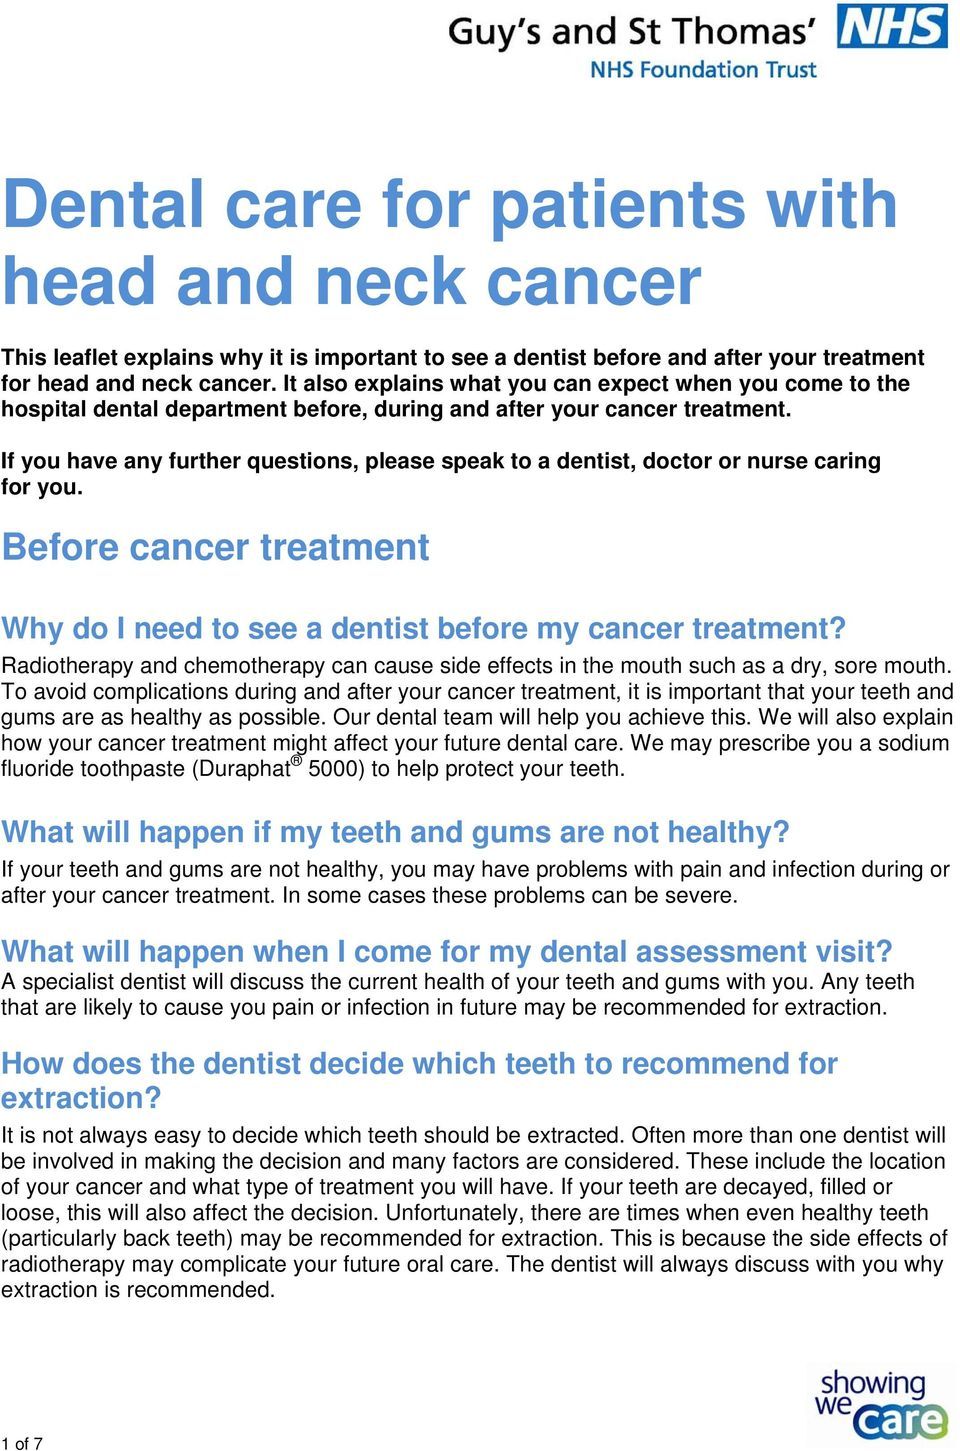 If you have any further questions, please speak to a dentist, doctor or nurse caring for you. Before cancer treatment Why do I need to see a dentist before my cancer treatment?